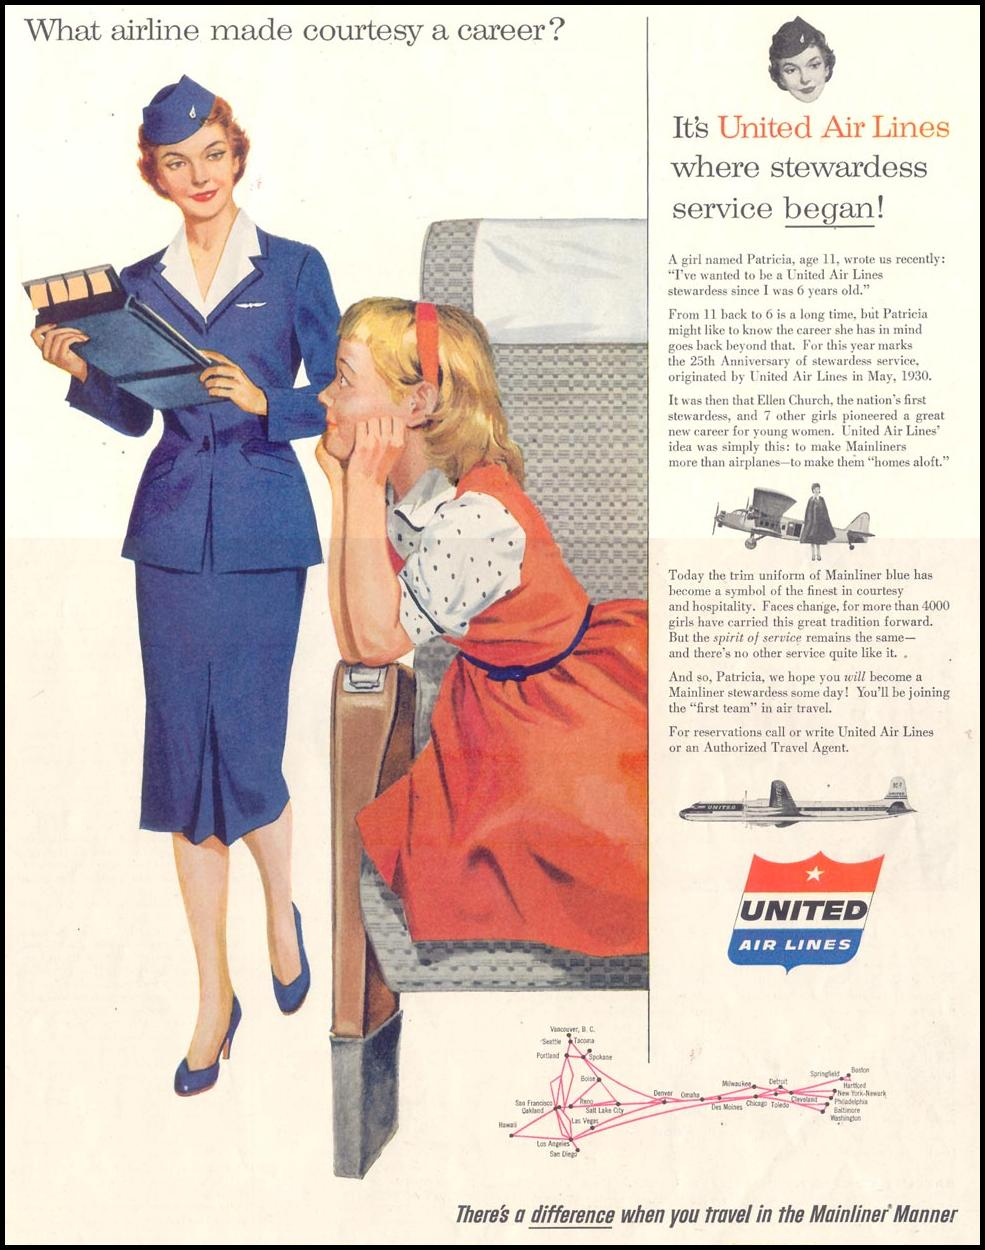 AIR TRAVEL SATURDAY EVENING POST 07/23/1955 p. 57